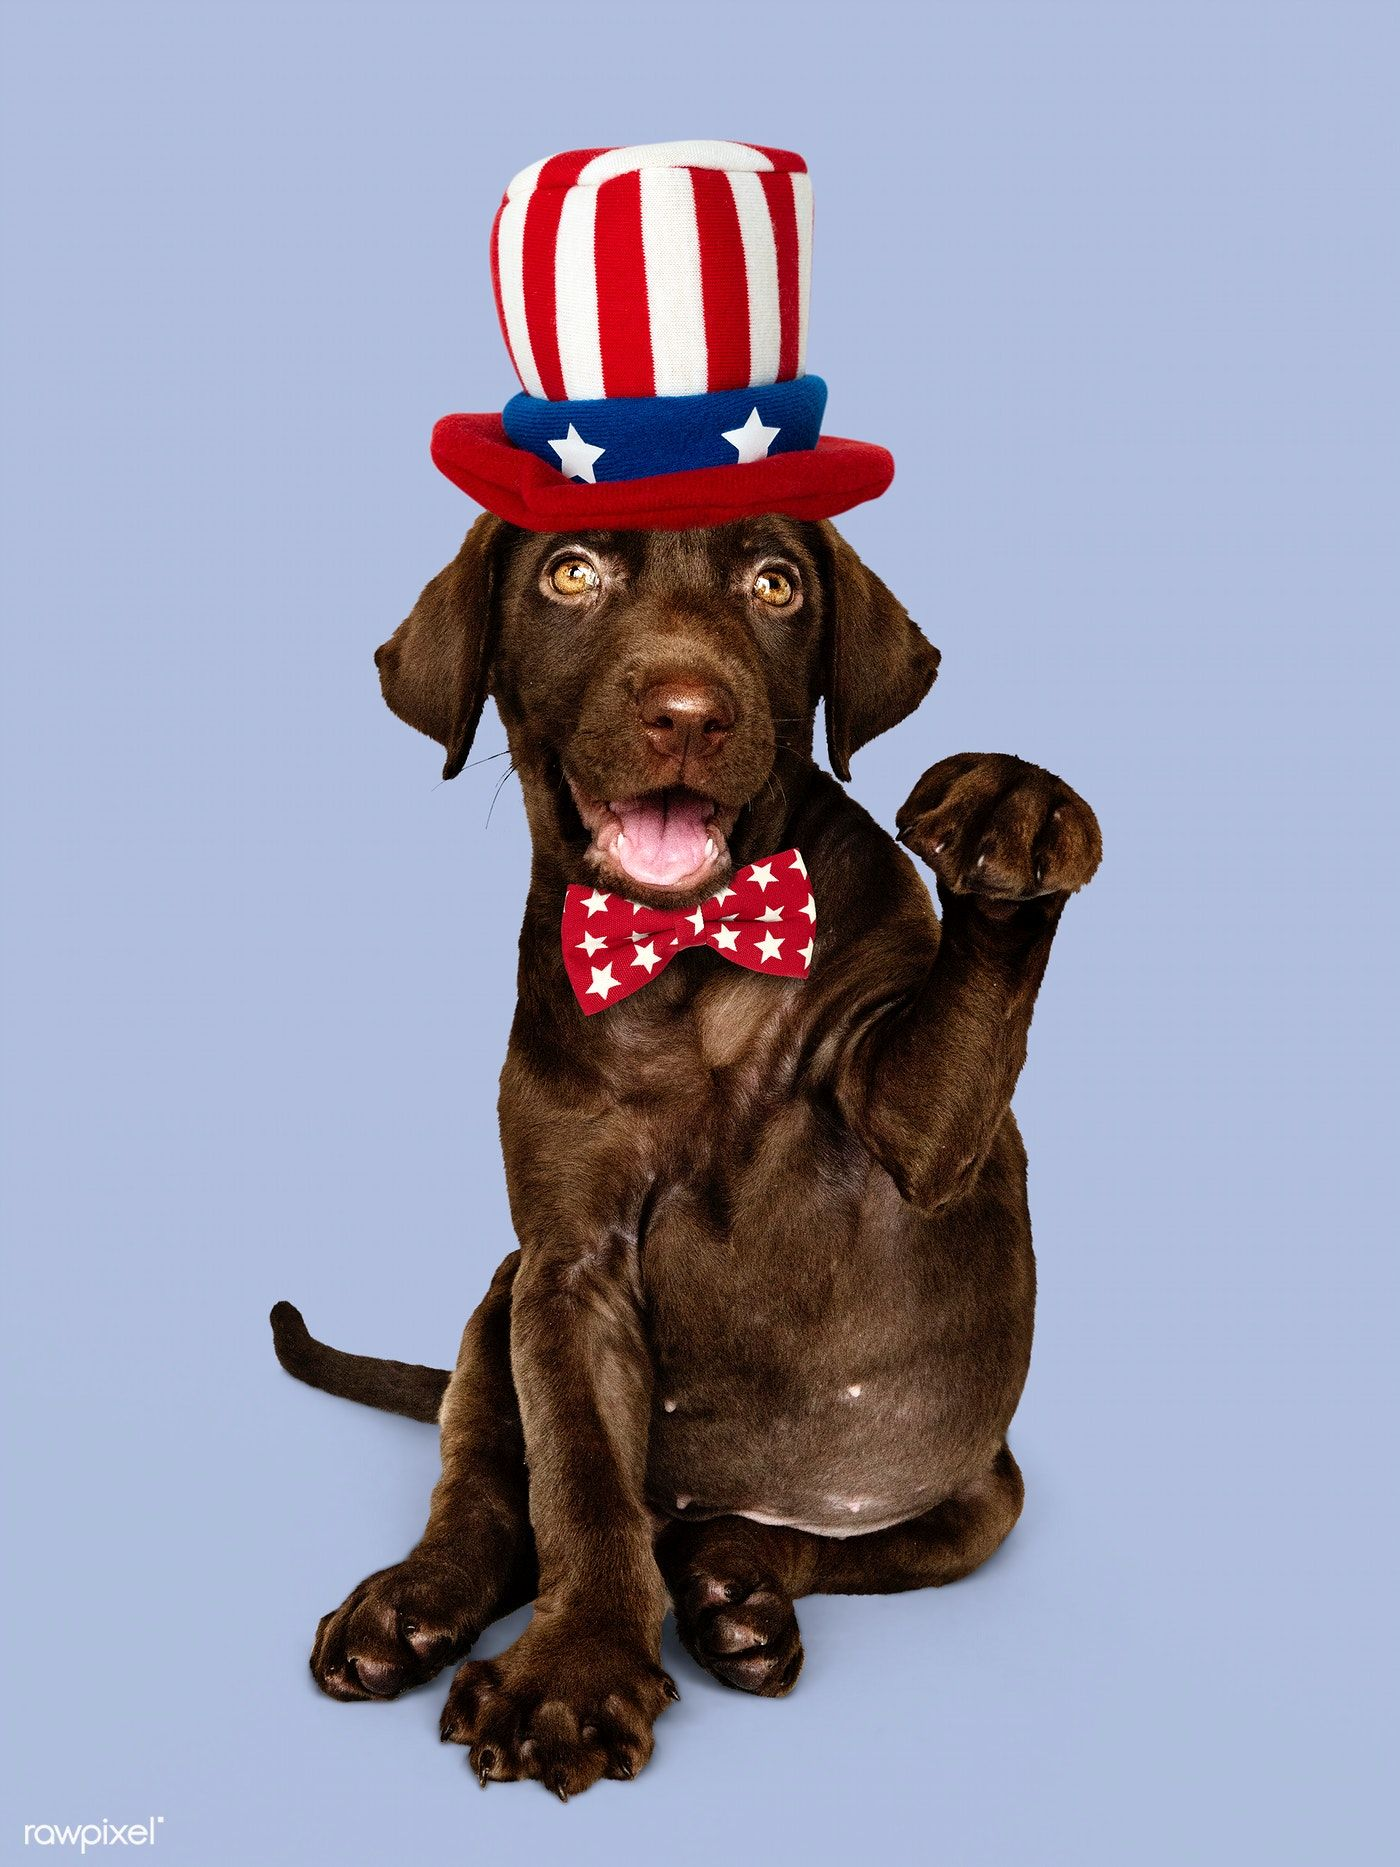 Download Premium Image Of Cute Chocolate Labrador Retriever In Uncle Sam Chocolate Labrador Retriever Labrador Dog Labrador Retriever Puppies